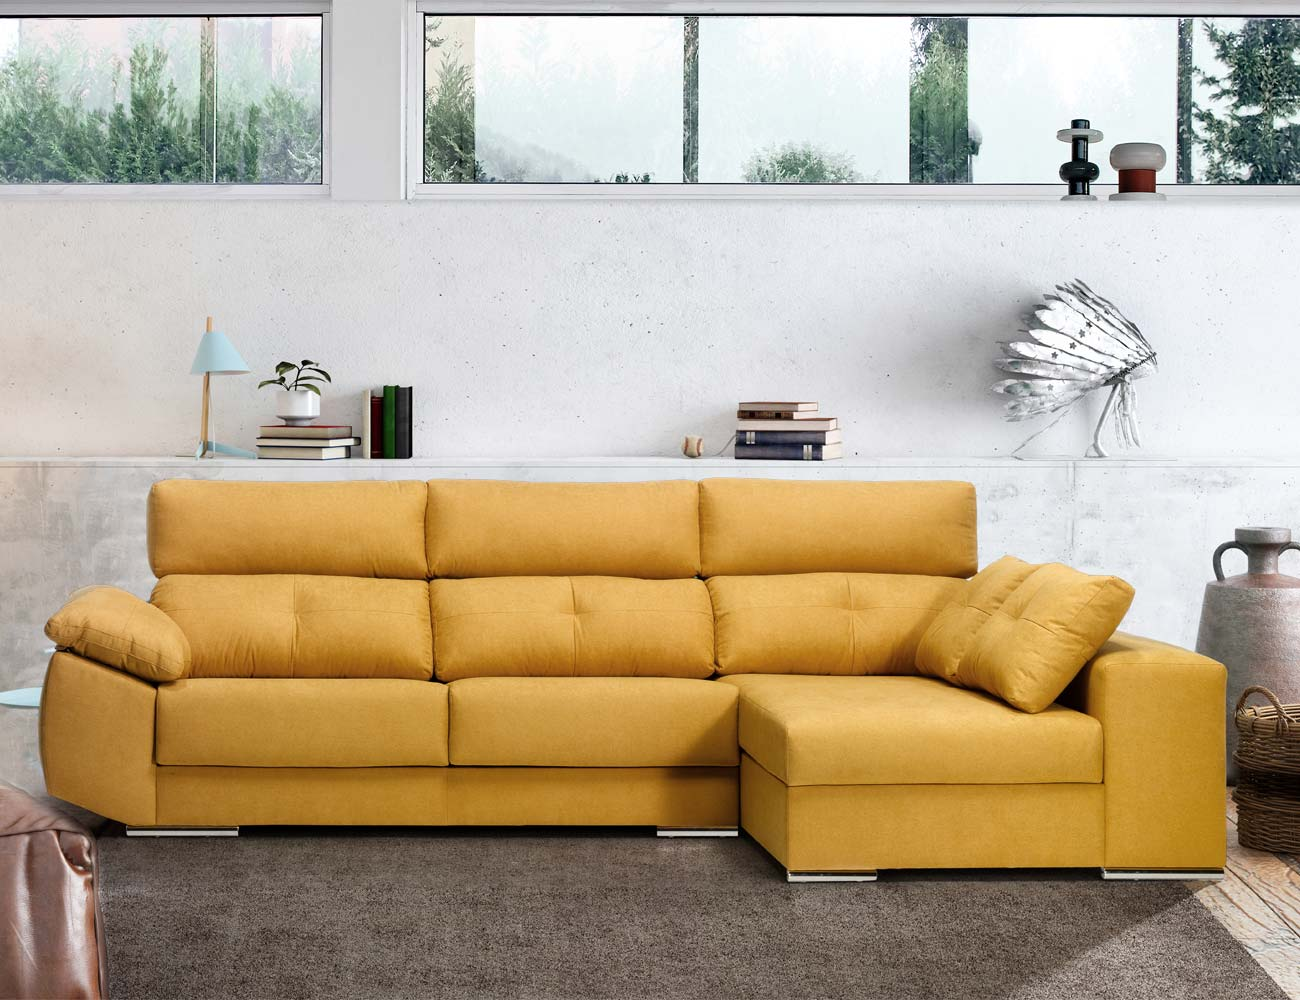 Sofa chaiselongue mostaza